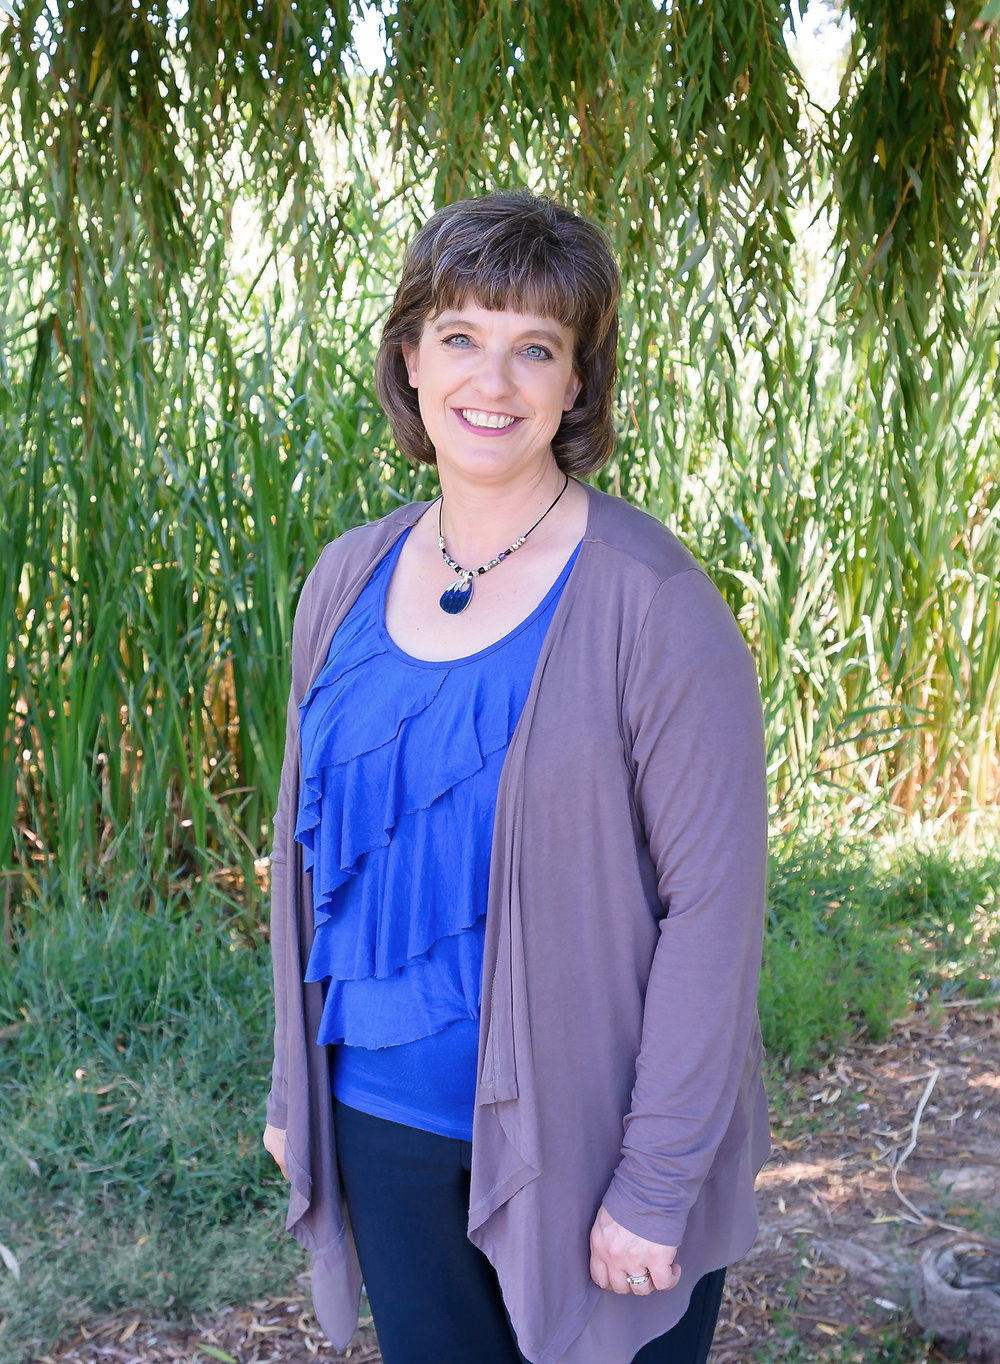 "Christy Frey, Mission Advancement Assistant - Run, run, run. I am always on the run.At Truth in Love Ministry, I manage (""run"") the donor database program. I also run really hard to keep our team one step ahead of the production schedule—not an easy task!As a wife to a pastor here in Nampa, there are numerous church activities to run to, and I run my fingers over the organ keys every Sunday for worship.As a mom to four boys, I seem to be running after groceries more times than I care to count. And, the running to all their athletic and band activities never ends.When I finally take a break, I love to run my eyes through the pages of a book, run through a deck of cards in a game of Solitaire, or run a needle through fabric doing counted cross-stitch.But the greatest race of all is the one described by St. Paul in Philippians 3:13-14, ""Forgetting what is behind and straining toward what is ahead, I press on toward the goal to win the prize for which God has called me heavenward in Christ Jesus."" It is my prayer that God blesses all of our efforts to bring more and more people to the banquet he has prepared at the finish line! Christy@TILM.org 